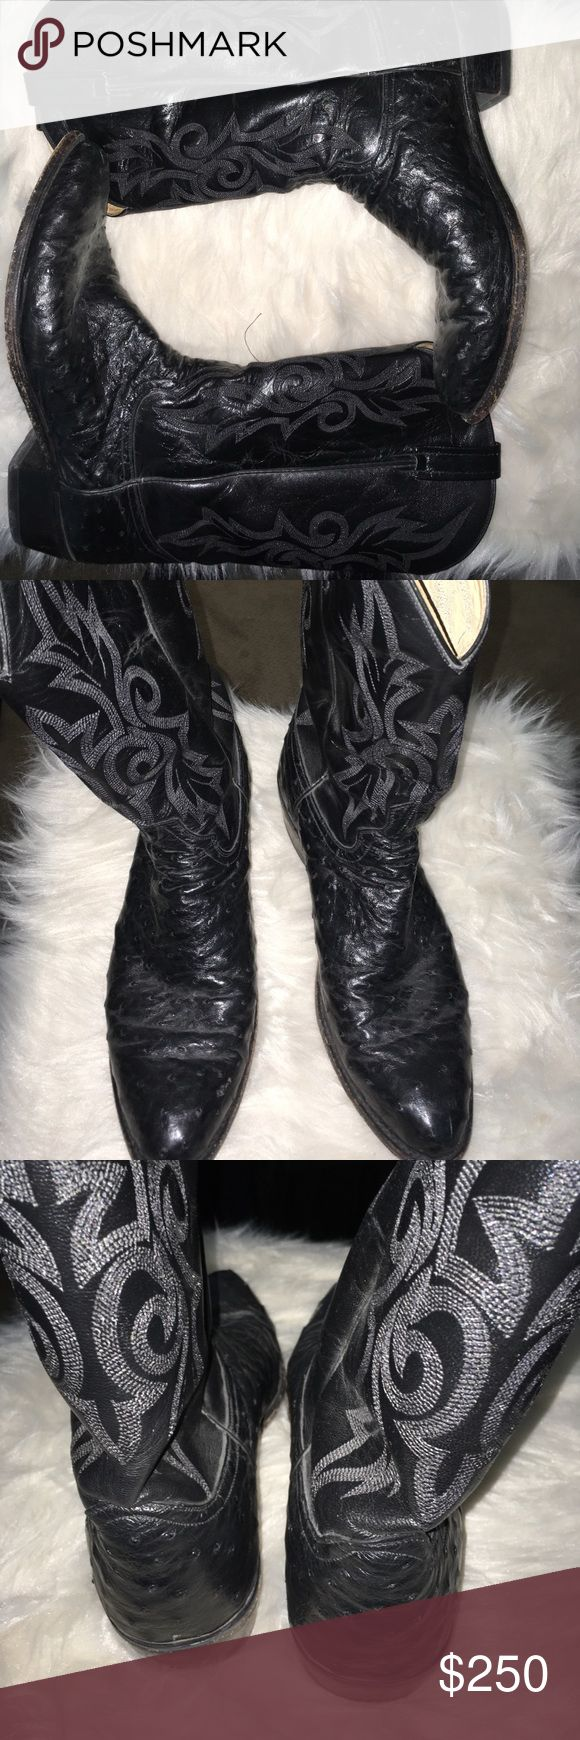 Dan Post Men's 12D Ostrich Boots😳👍 Gently used pair of awesome Ostrich Dan Post Boots! 12D if need any additional pics let me know! Dan Post Shoes Boots